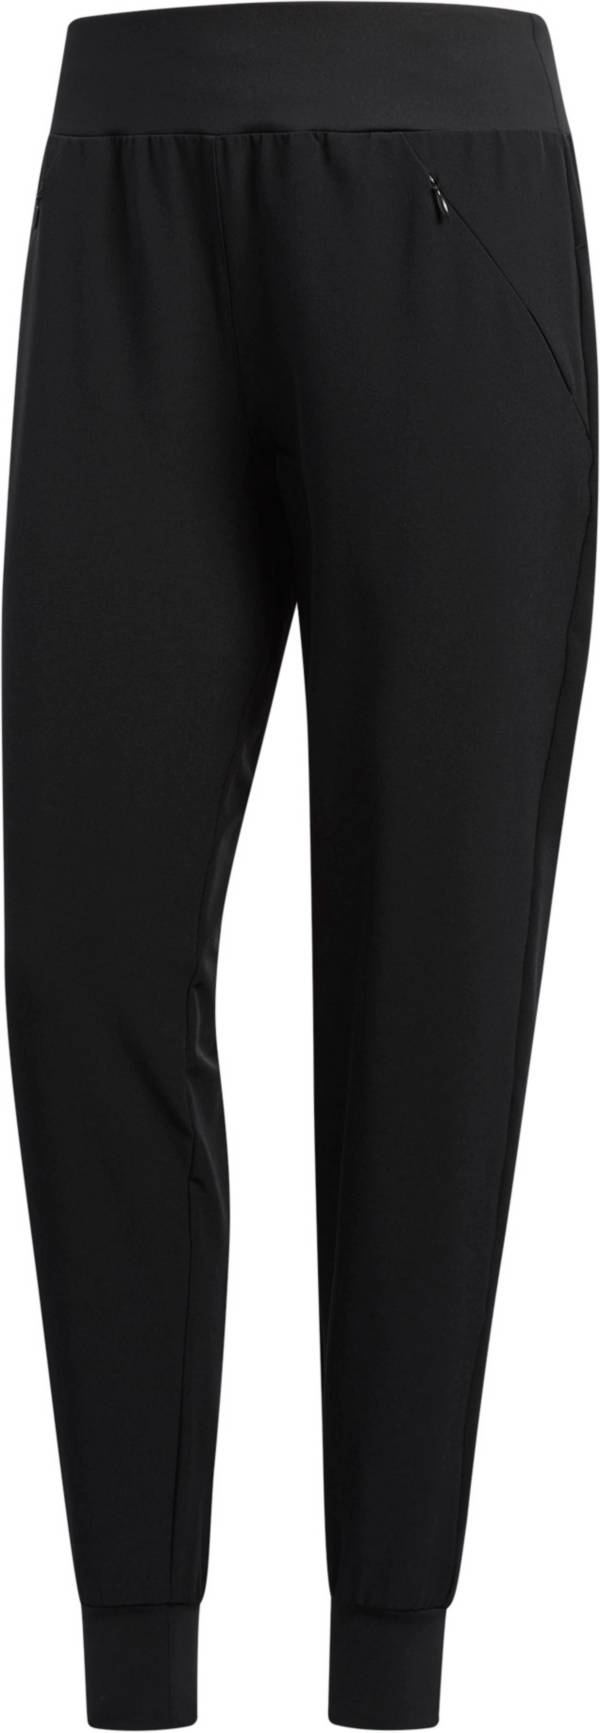 adidas Women's Beyond 18 Course Jogger Golf Pants product image